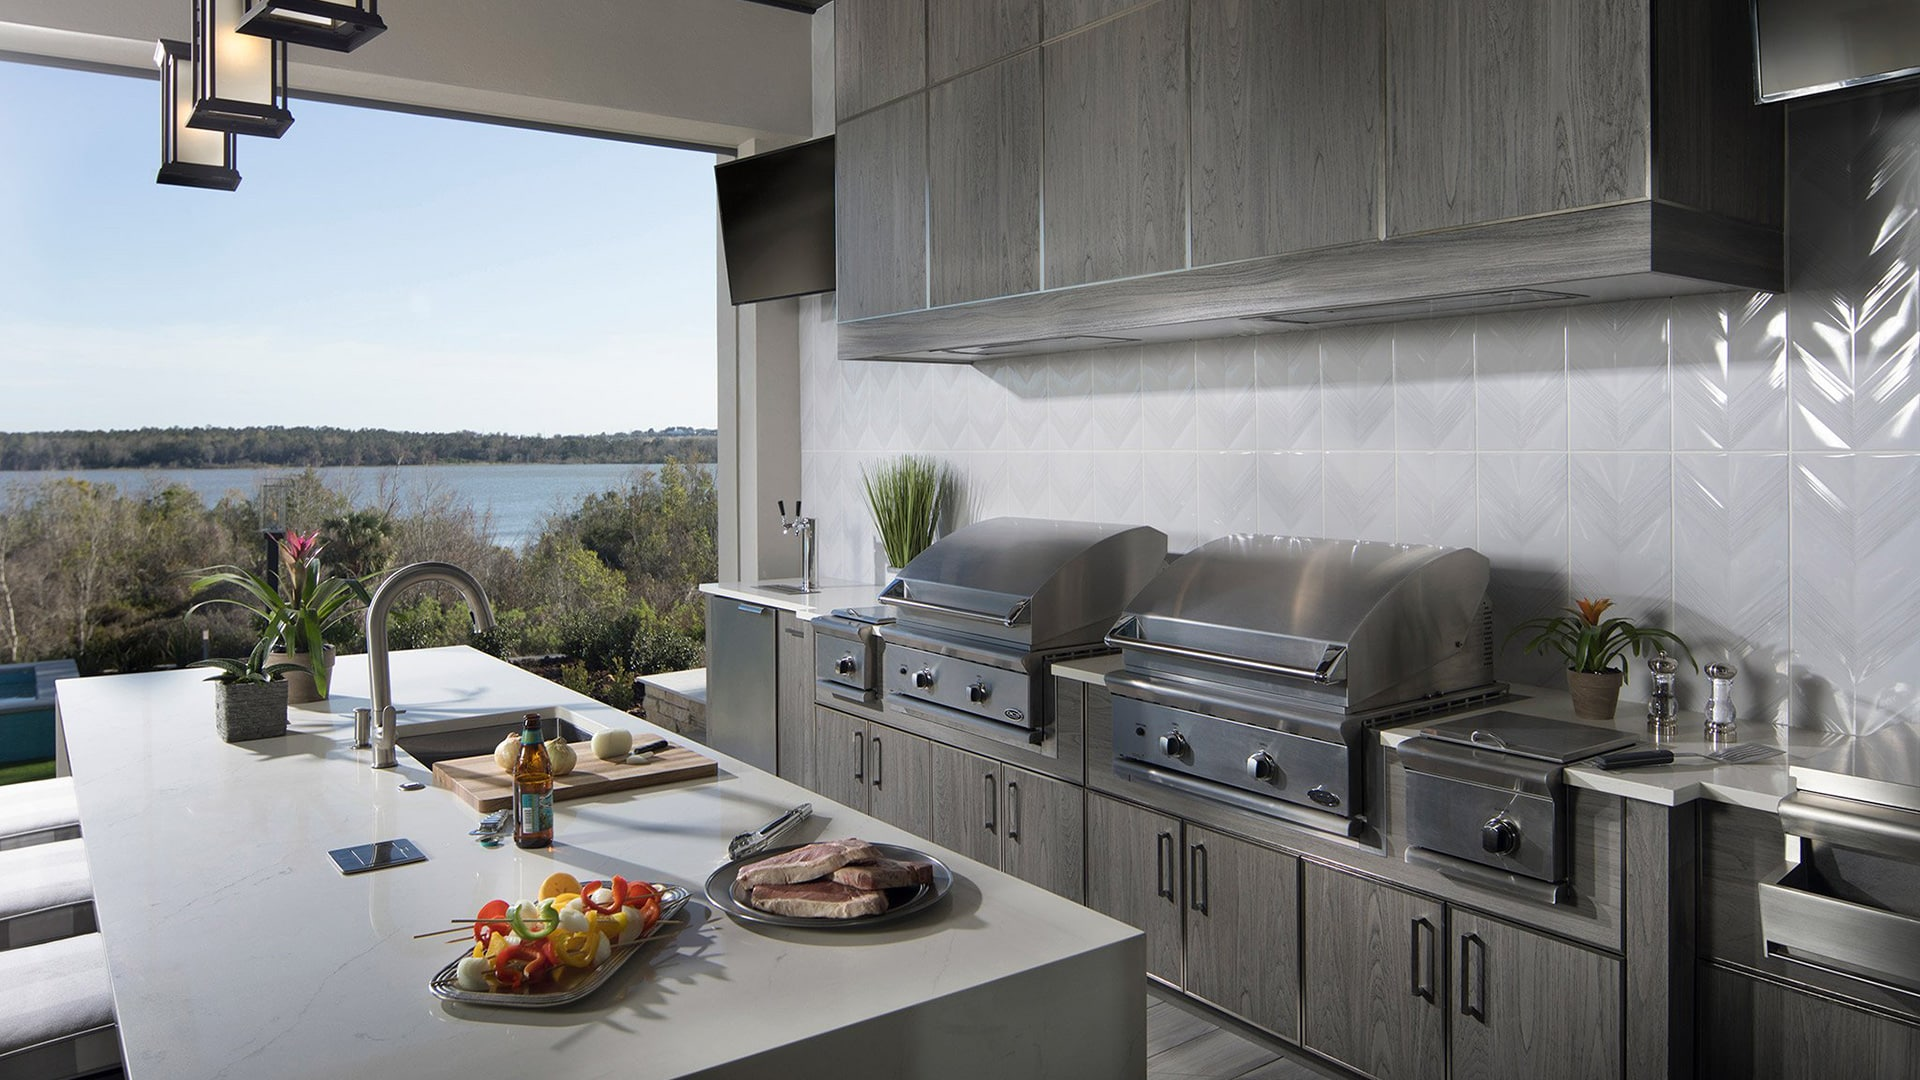 0% APR Financing for 24 Months on Your Outdoor Kitchen